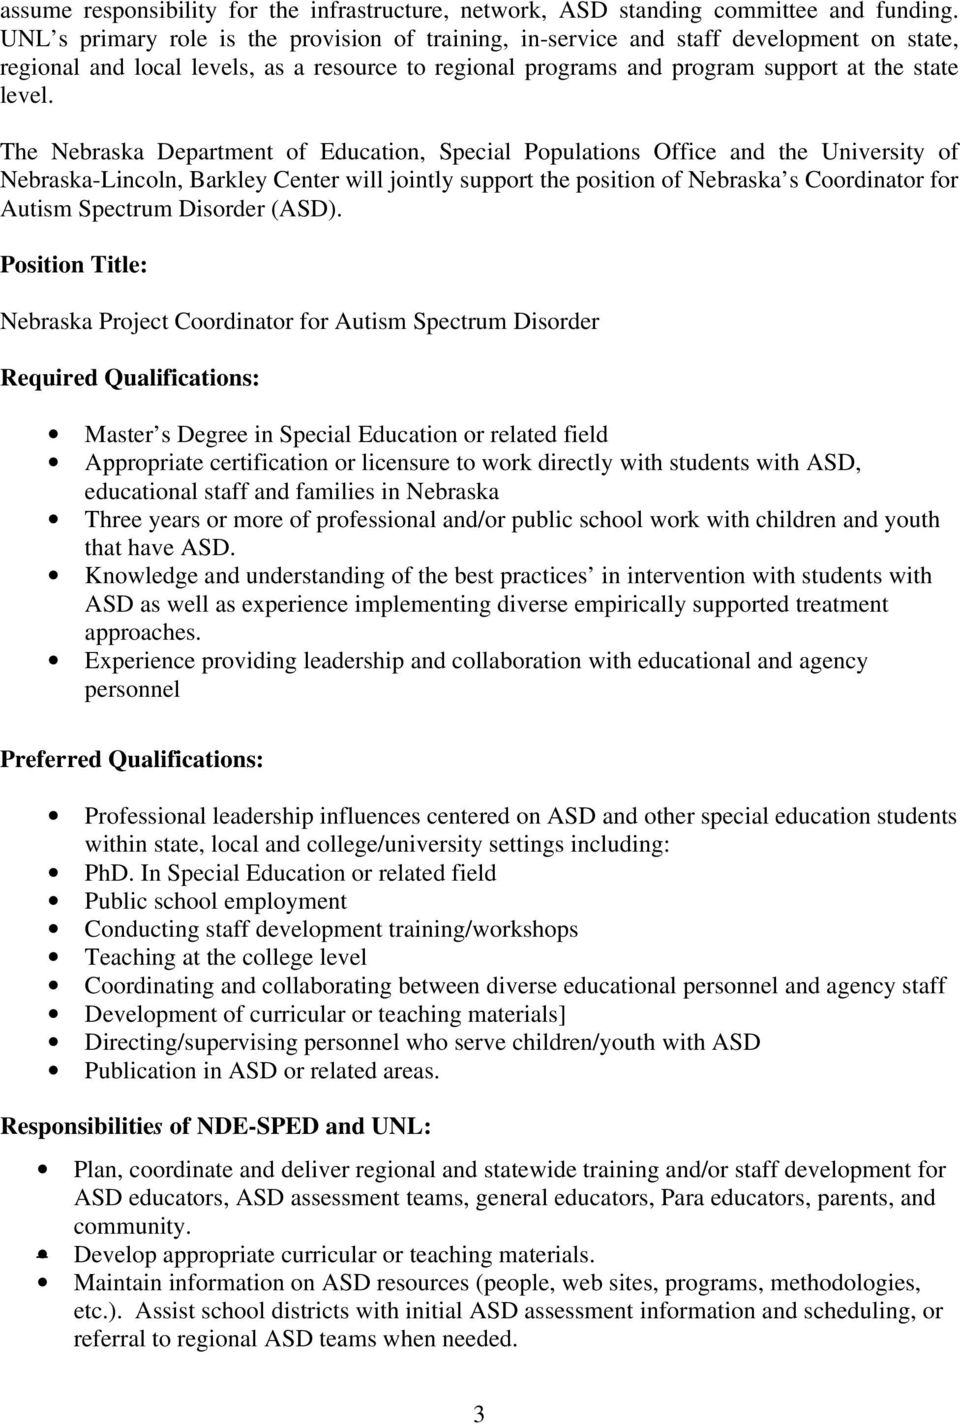 The Nebraska Department of Education, Special Populations Office and the University of Nebraska-Lincoln, Barkley Center will jointly support the position of Nebraska s Coordinator for Autism Spectrum